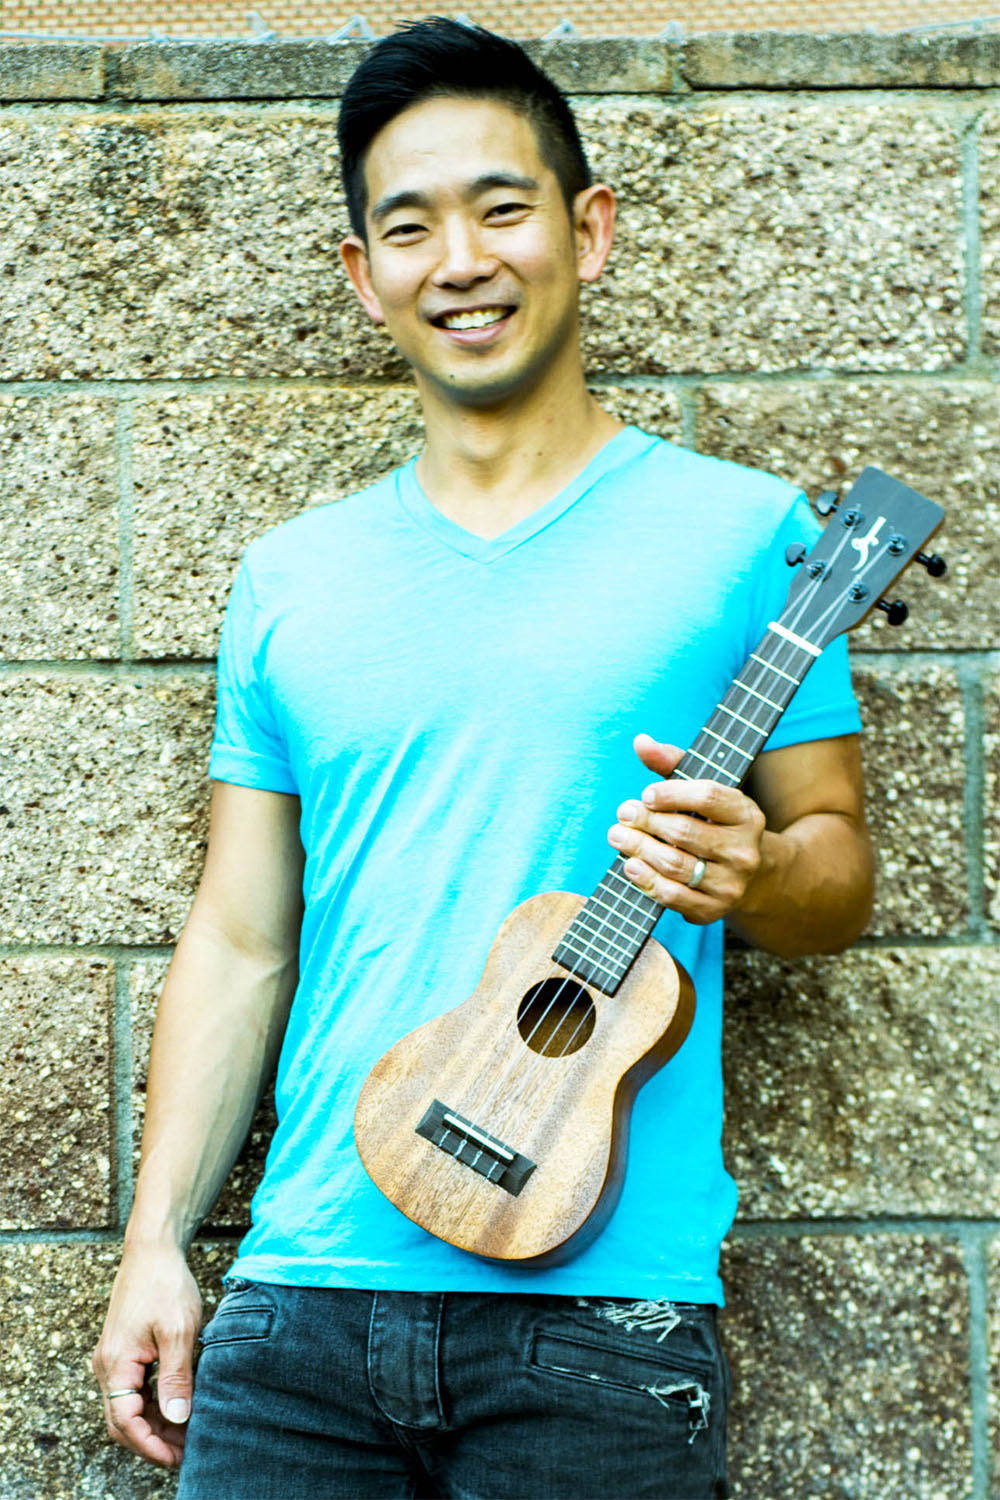 Jake Shimabukuro Wideneck Soprano Ukulele with Tenor Range